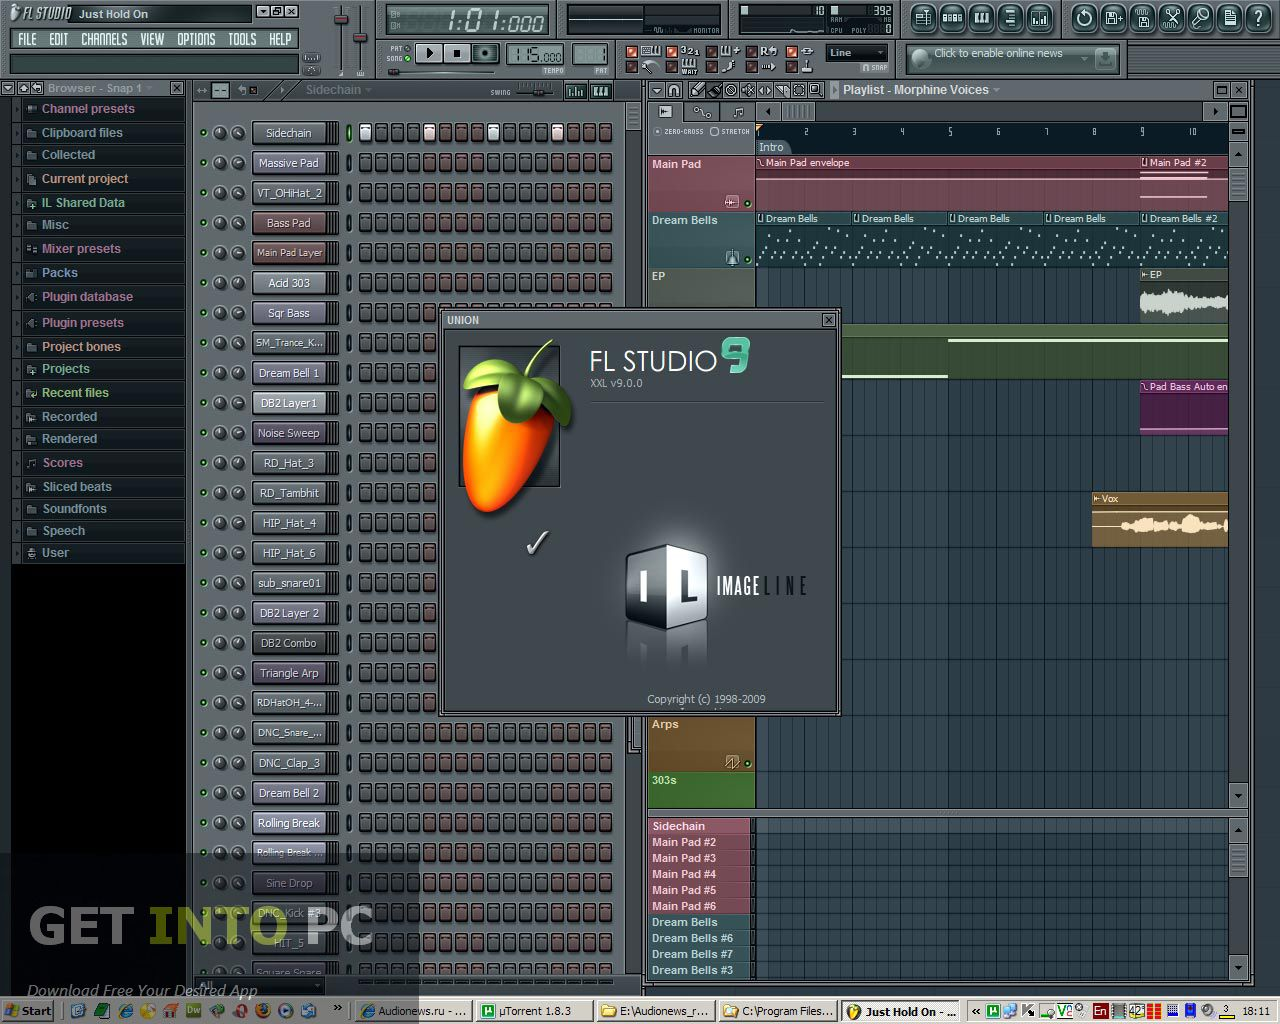 fl studio 8 registration key